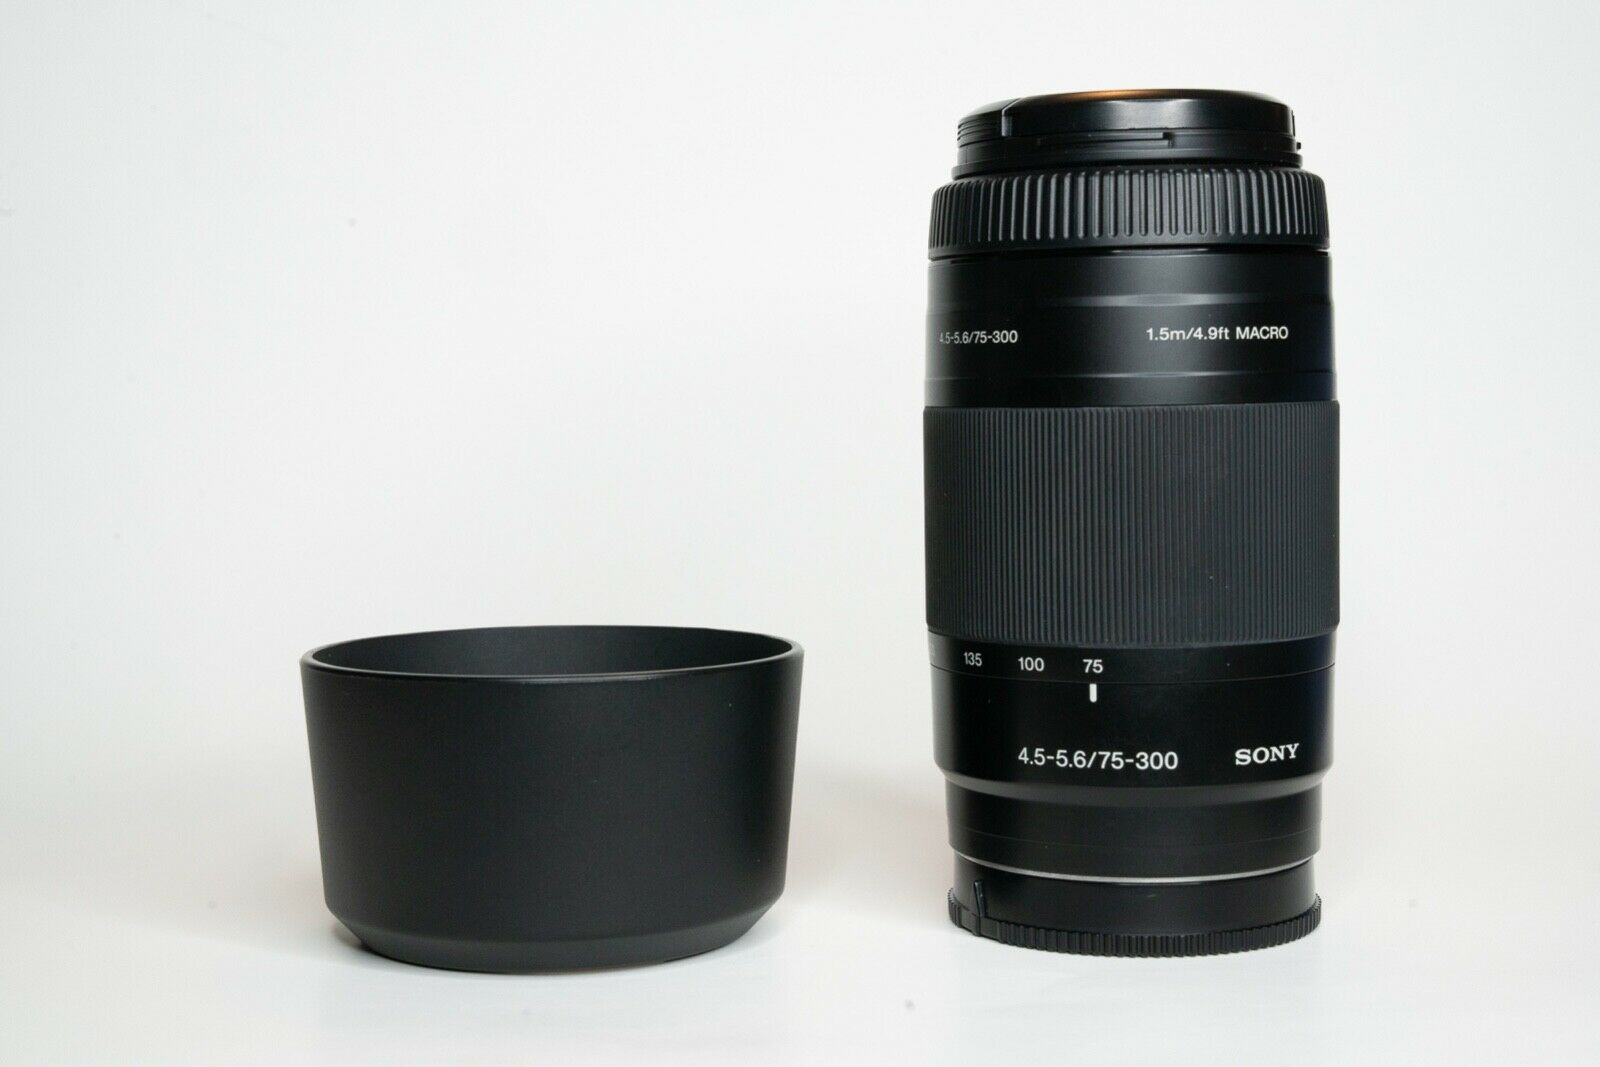 Sony 75-300mm F/4.5-5.6 DSLR Alpha A-Mount Telephoto Zoom/Macro Lens SAL75300 - $35.00